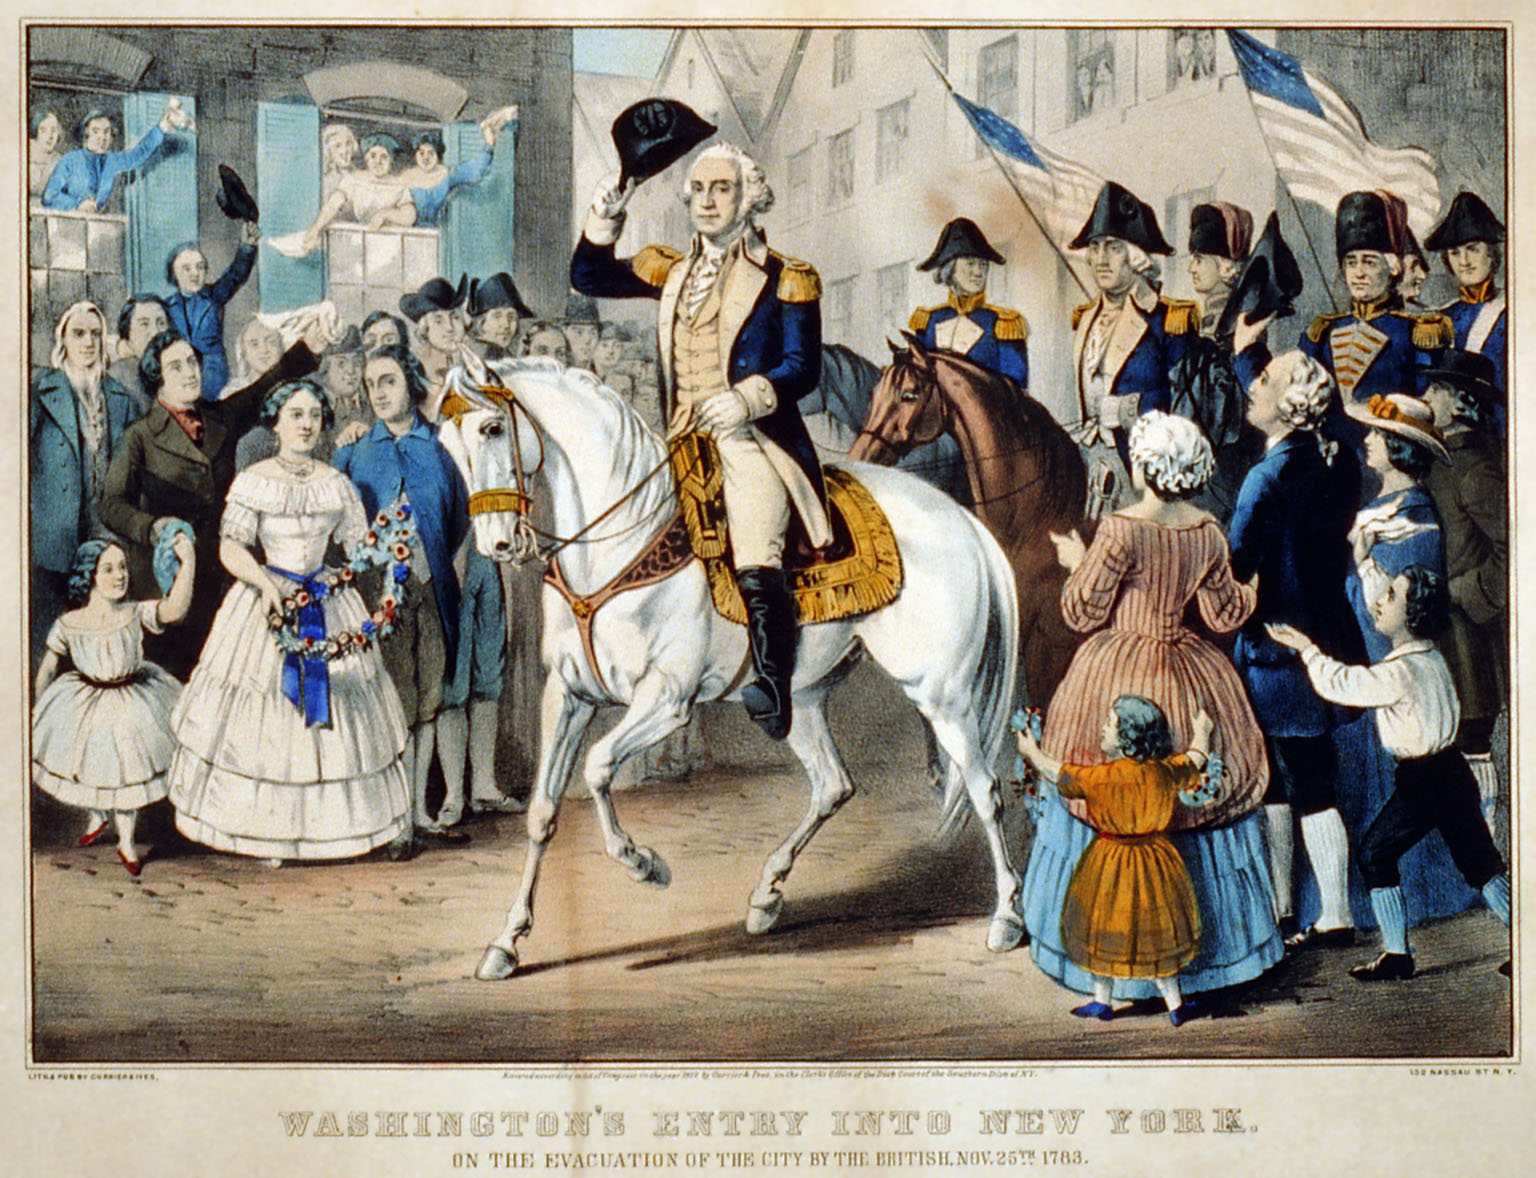 File:Washington's entry into New York 1783, Currier and Ives 1857.jpg